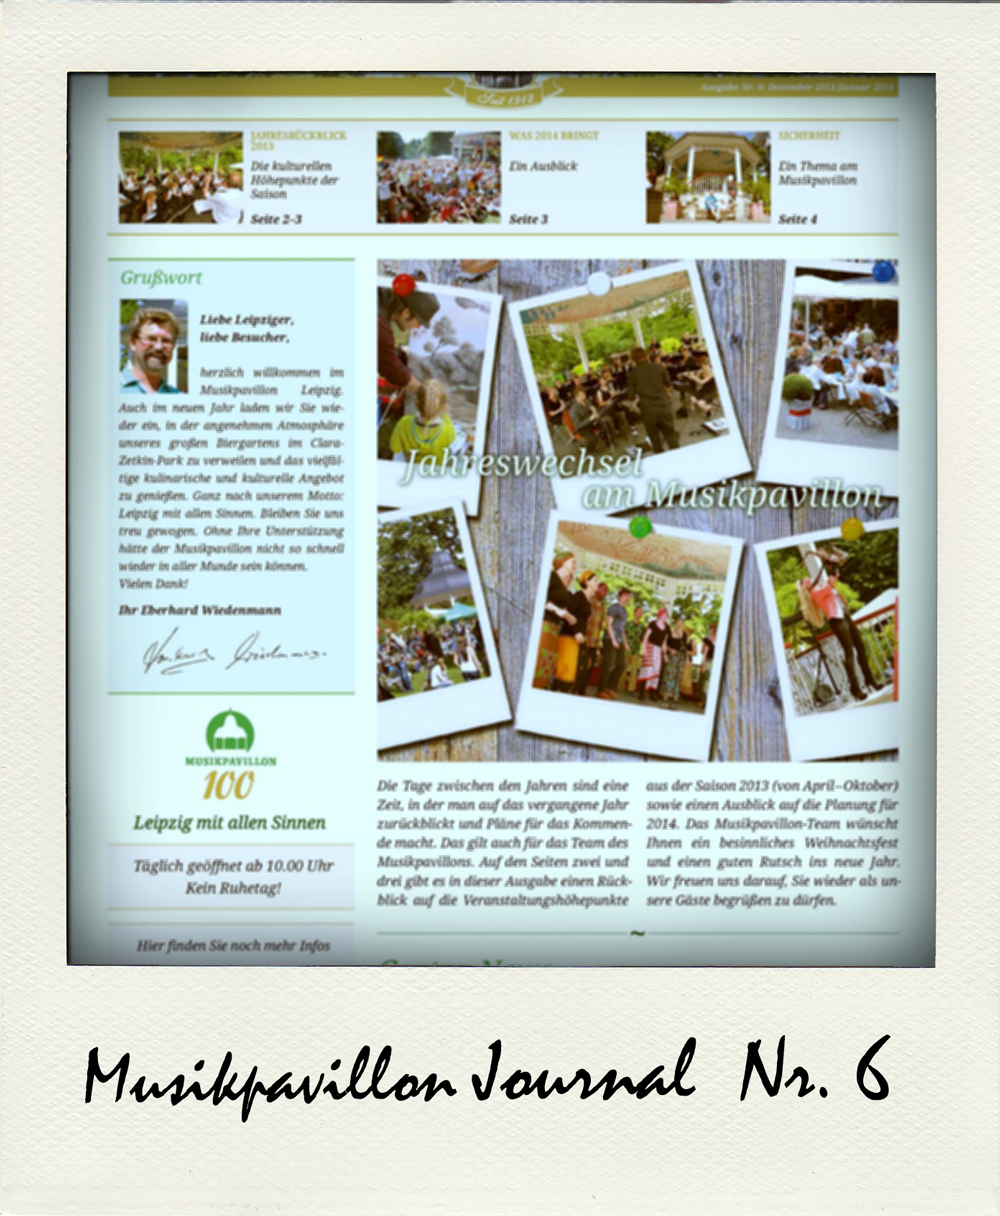 Musikpavillon Journal Ausgabe 6